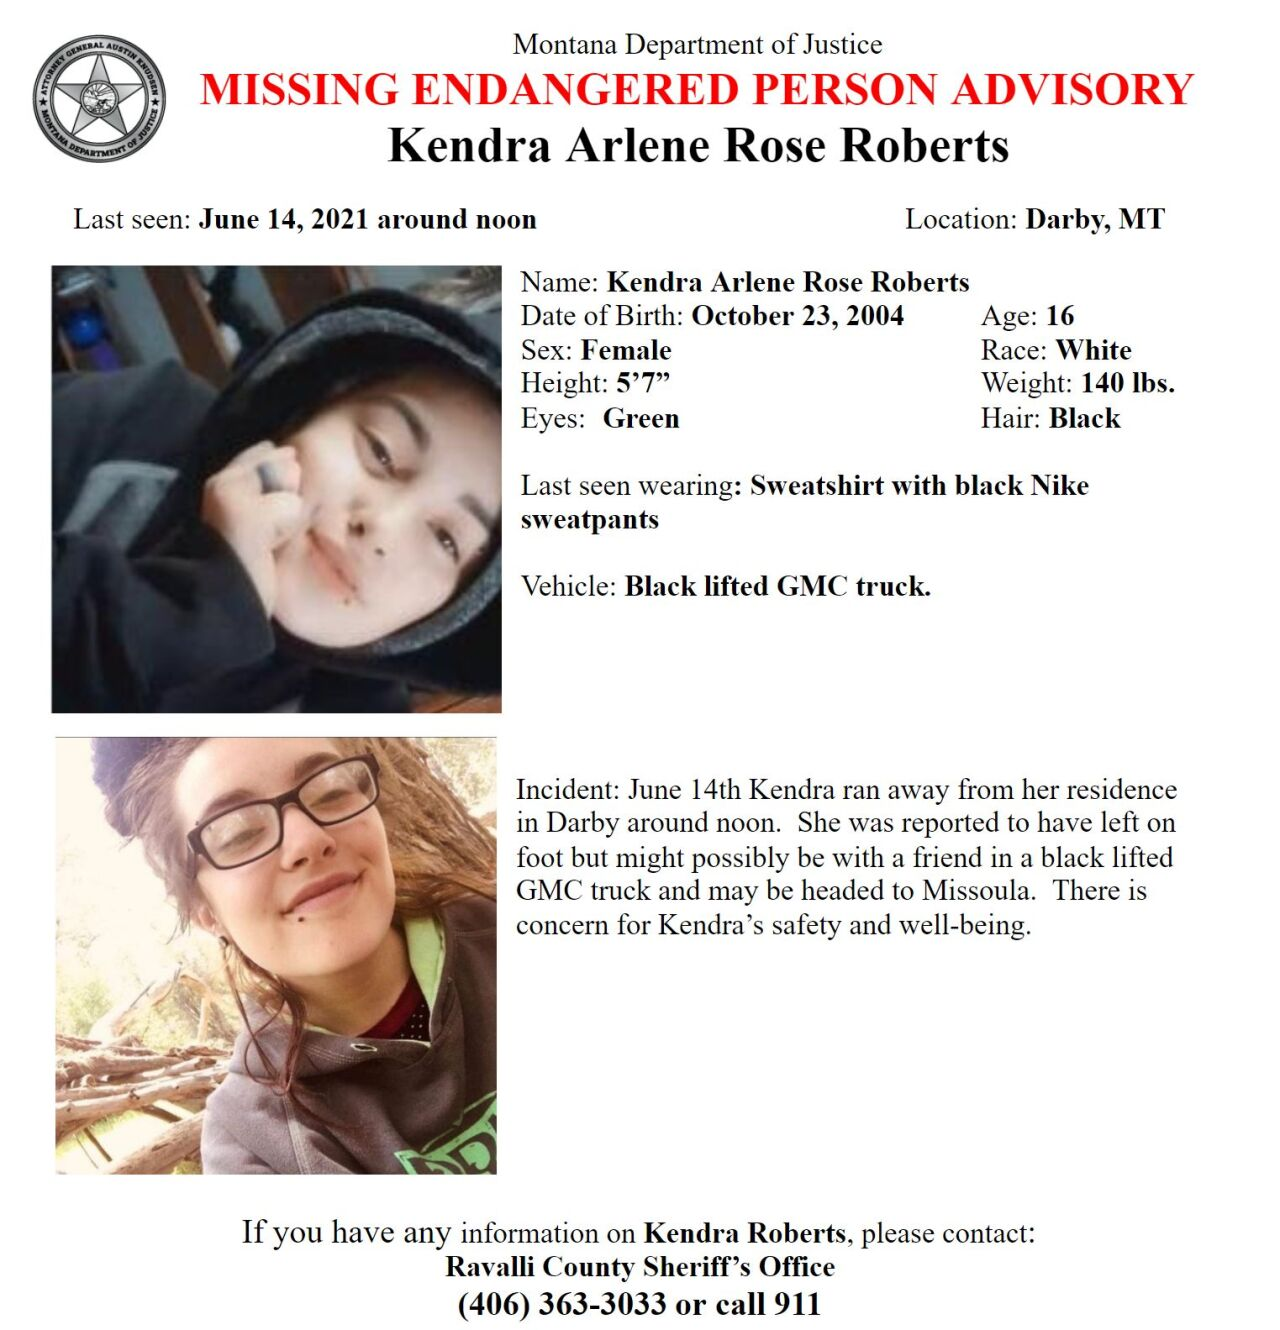 Missing/Endangered Person Advisory 16-year-old Kendra Arlene Rose Roberts of Darby